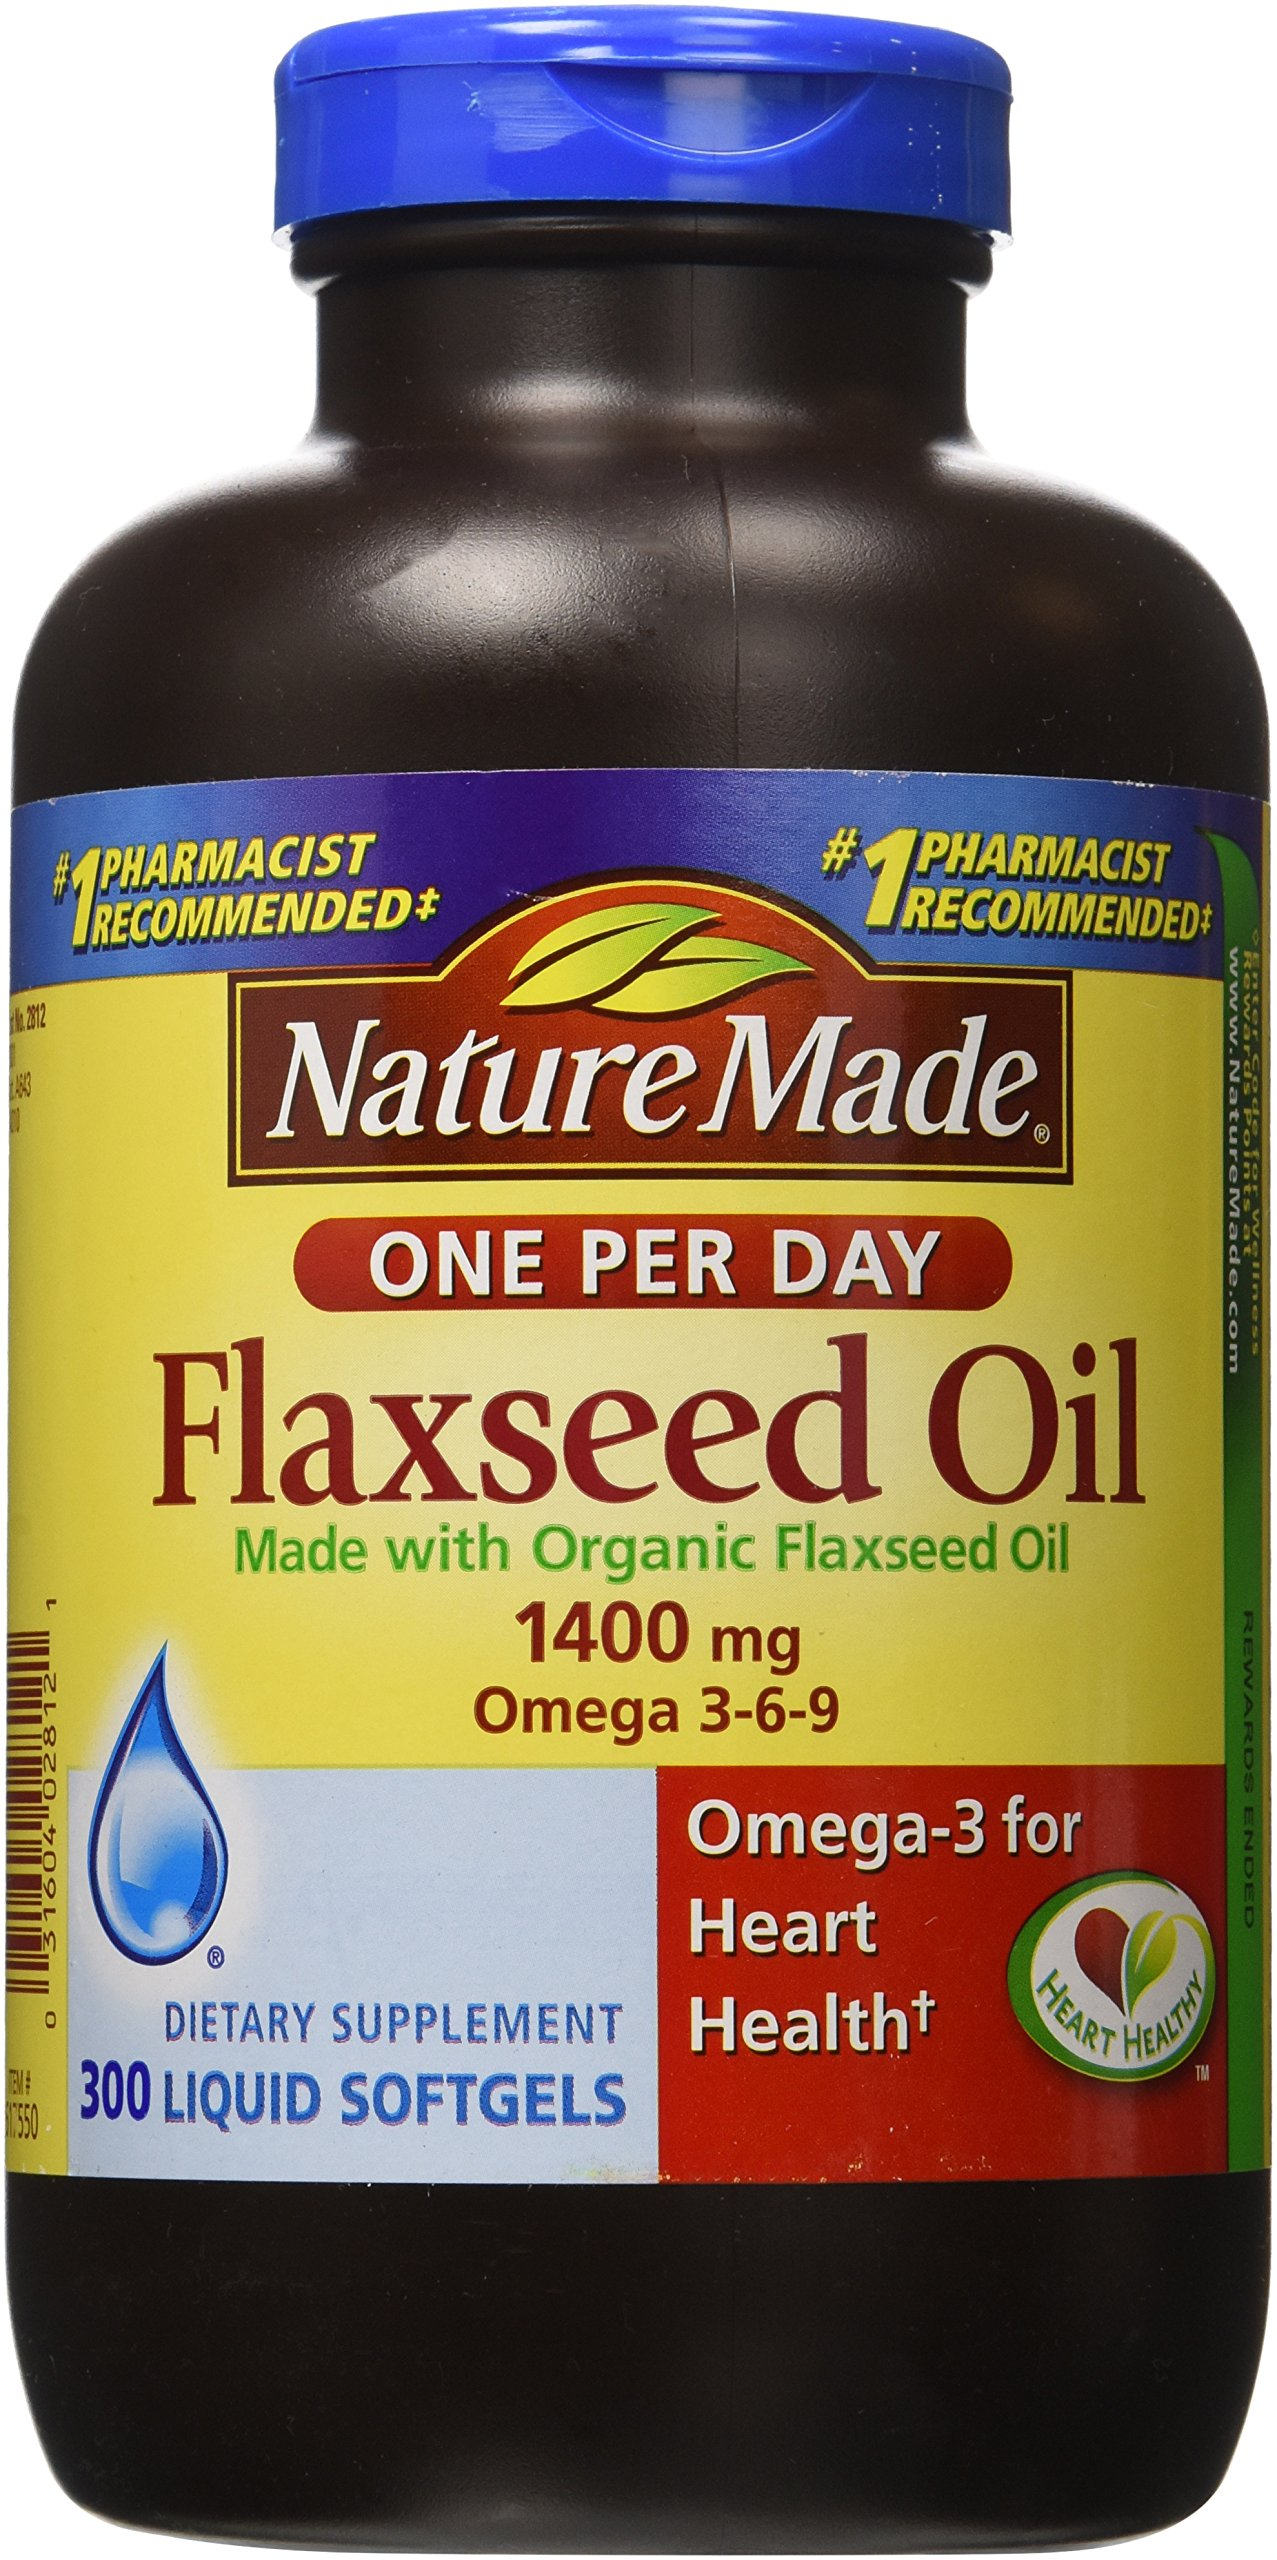 Nature Made Organic Flaxseed Oil 1,400 mg - Omega-3-6-9 for Heart Health - 300 Softgels by Nature Made